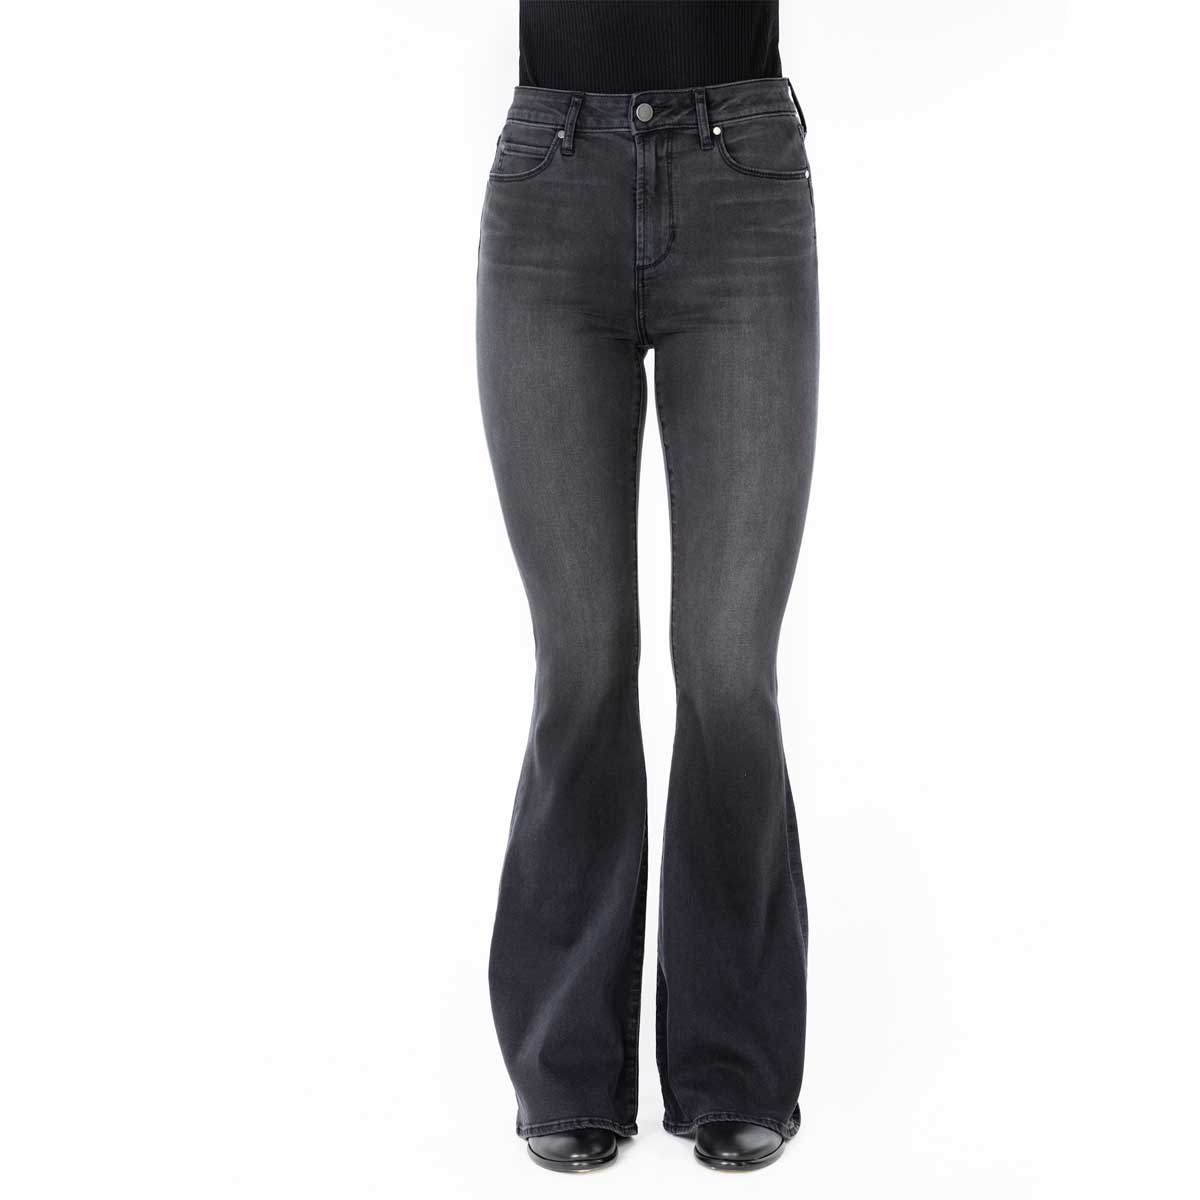 Articles of Society Women's Bridgette Hi Rise Flare Jeans - Kirkland